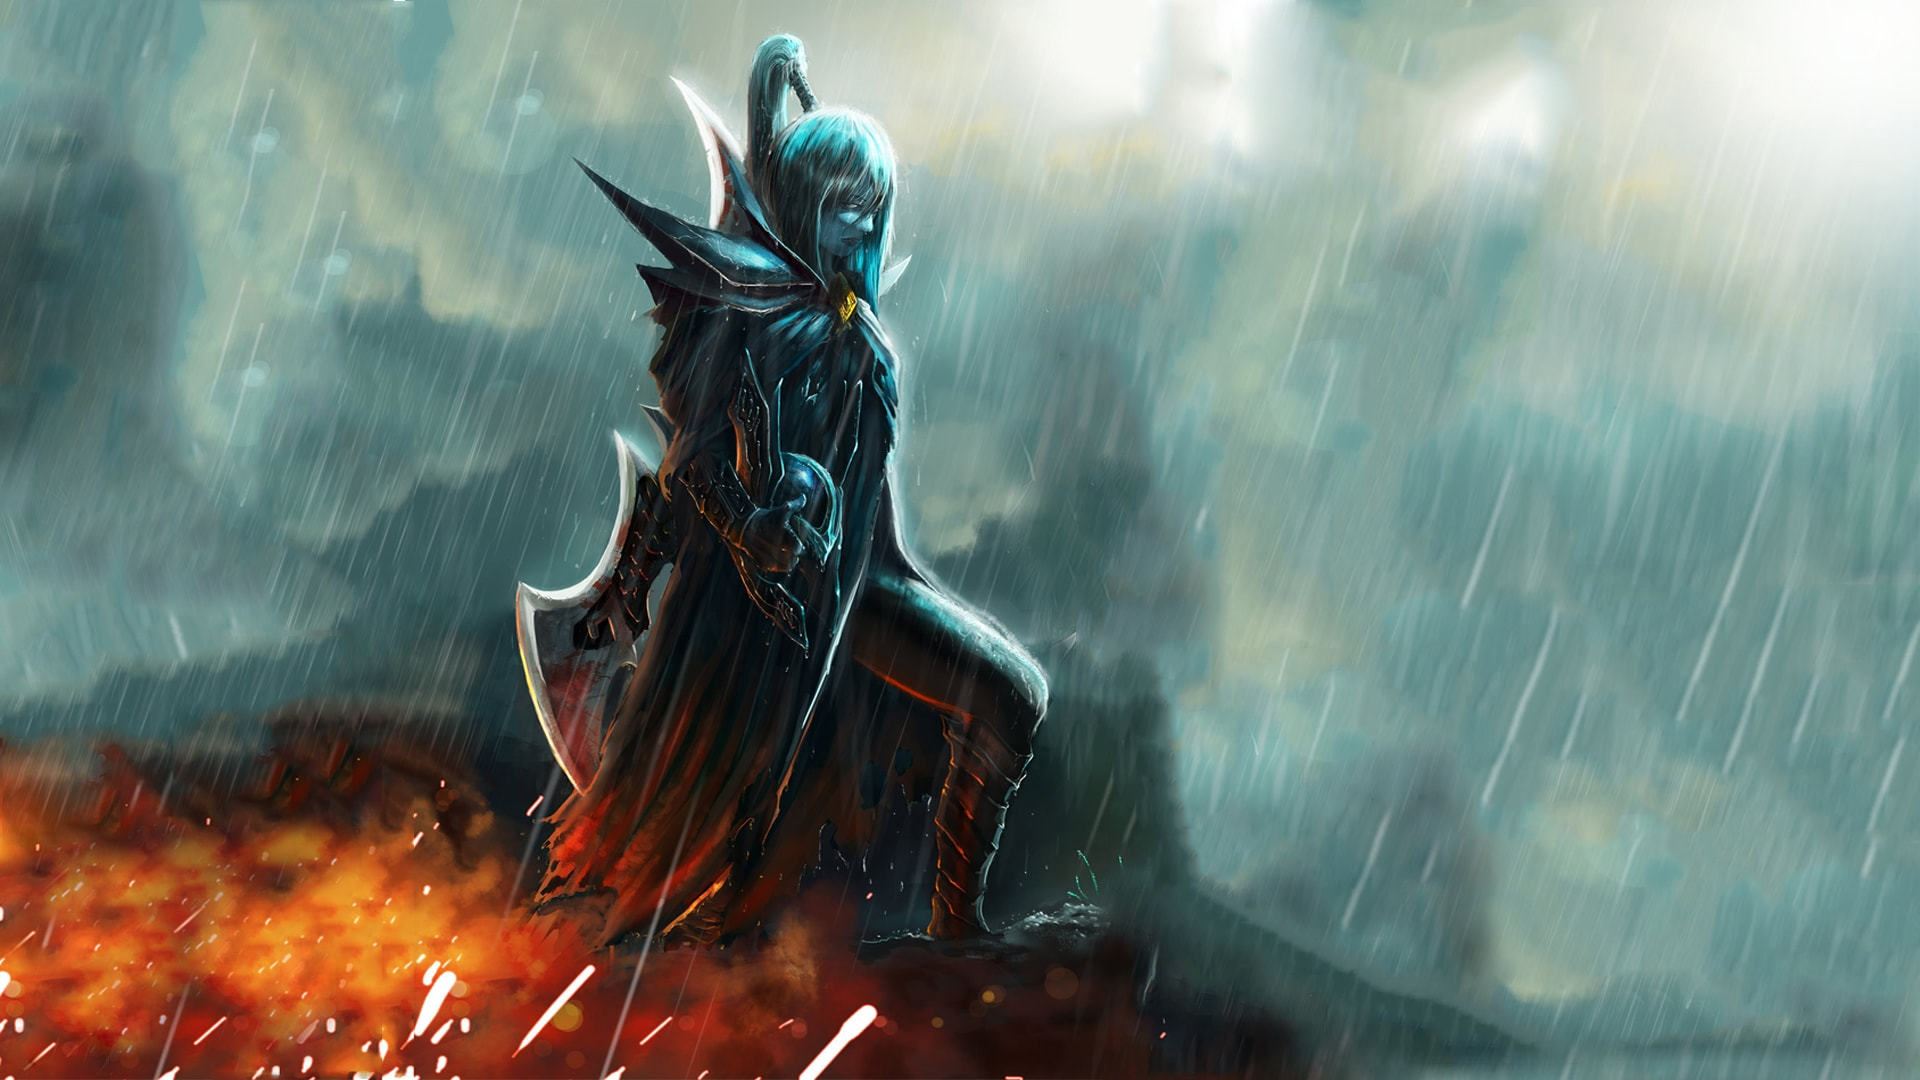 Dota2 : Phantom Assassin Wallpapers hd